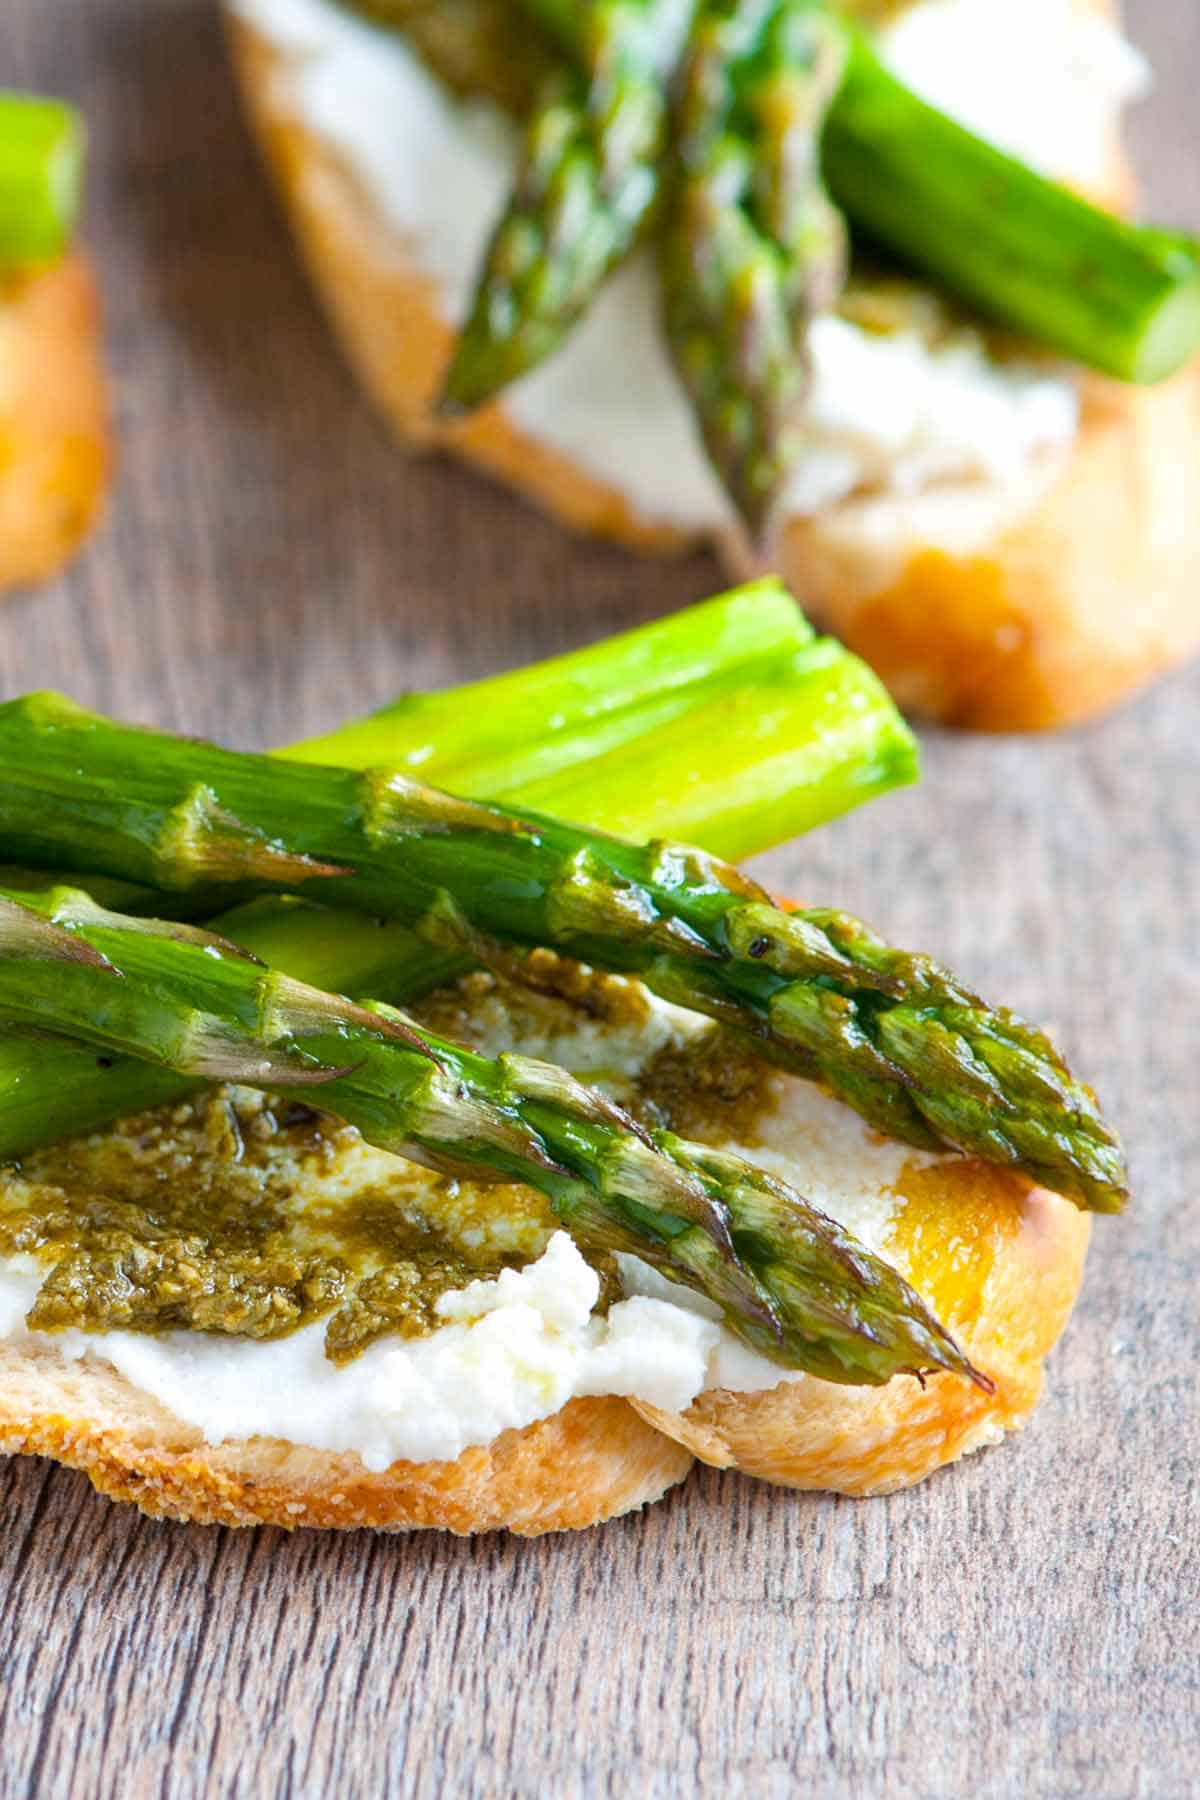 How to Make Crostini with Asparagus, Ricotta and Pesto